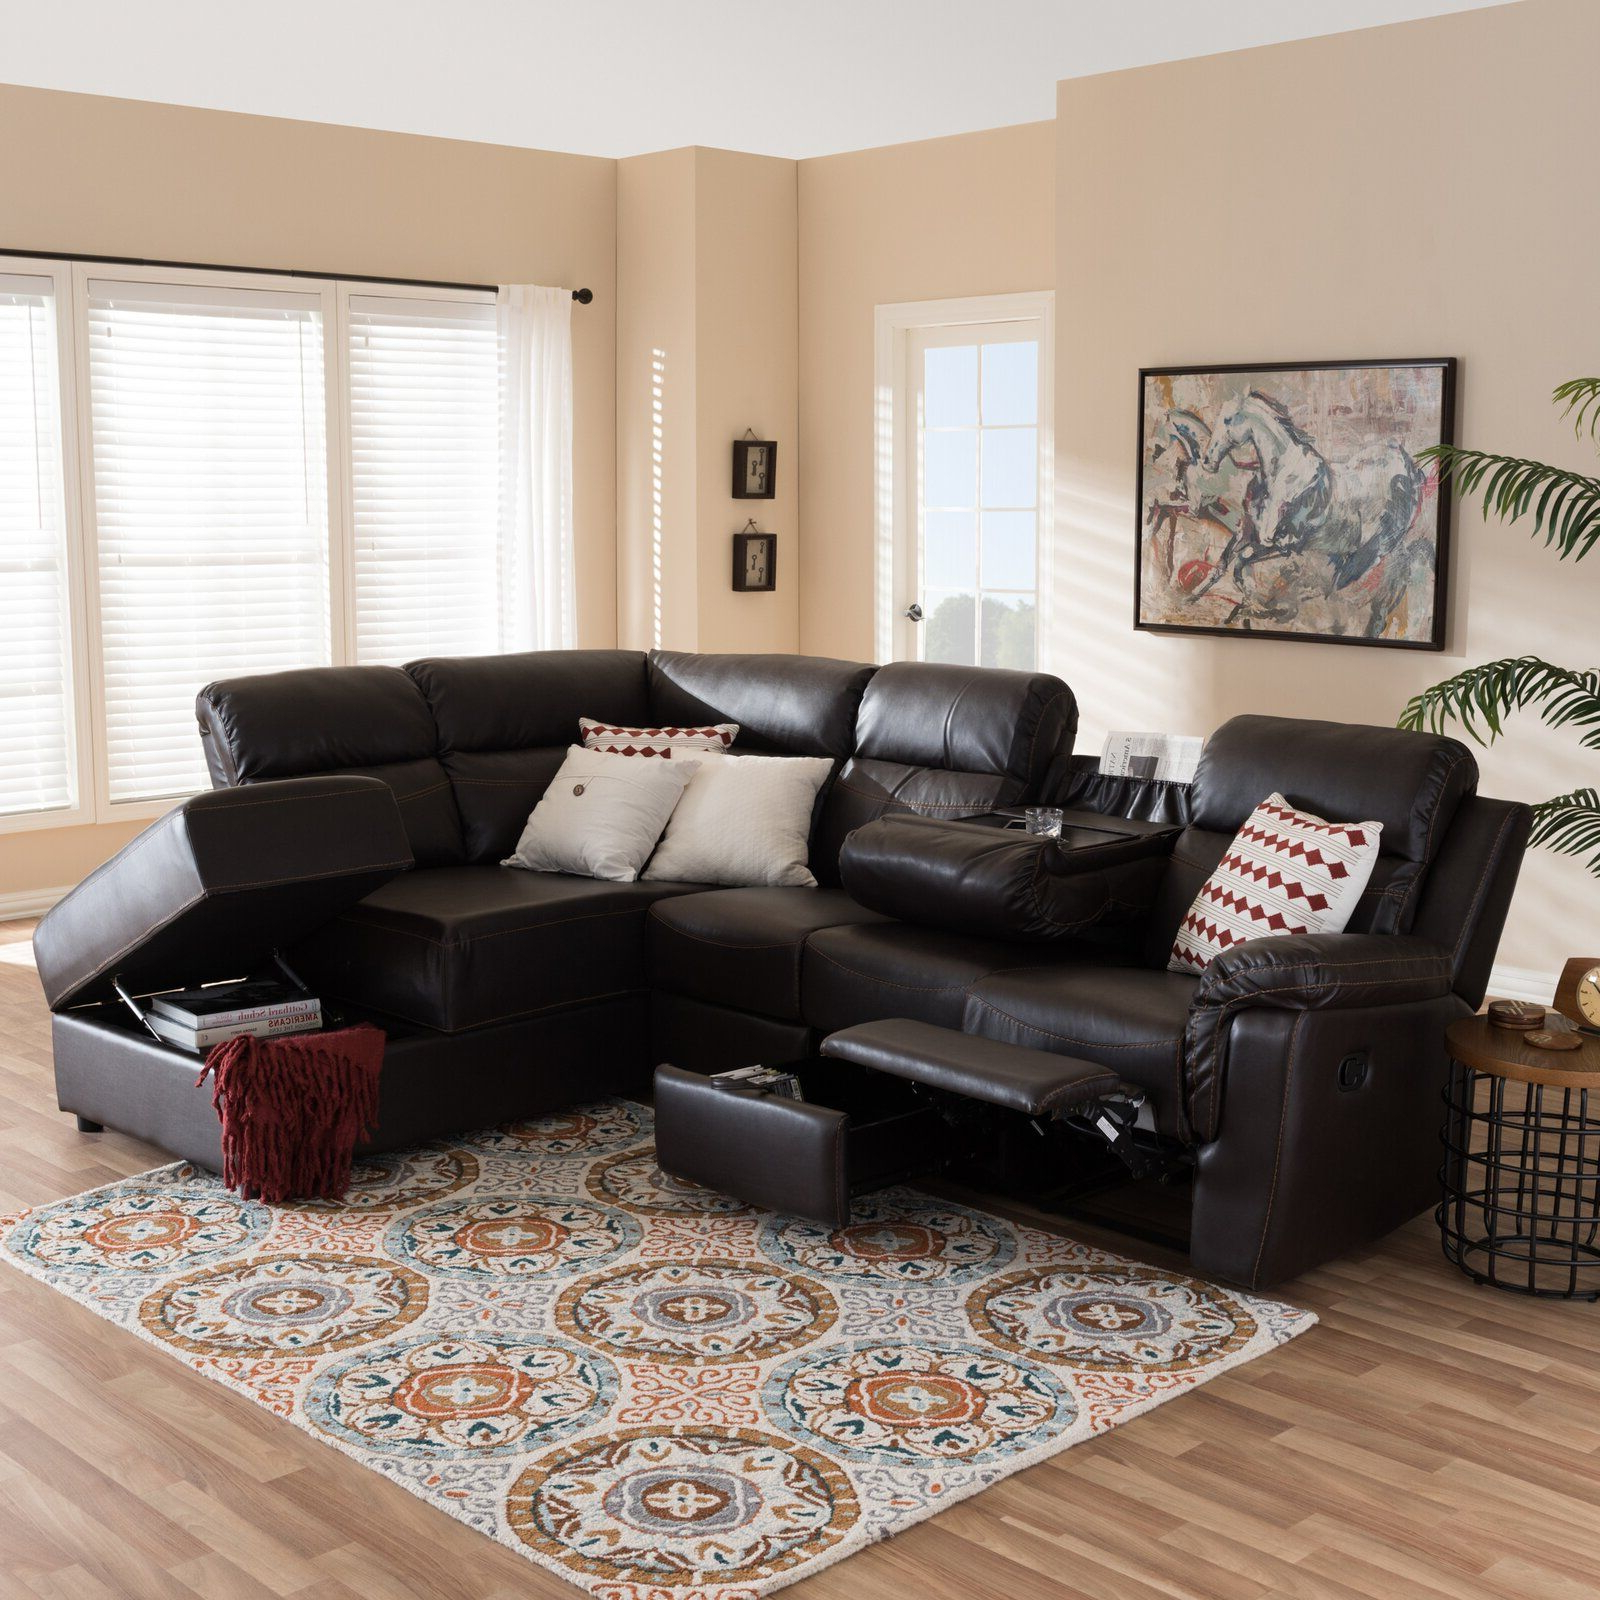 Copenhagen Reclining Sectional Sofas With Right Storage Chaise Intended For Newest Latitude Run® Jaynelle  (View 18 of 20)